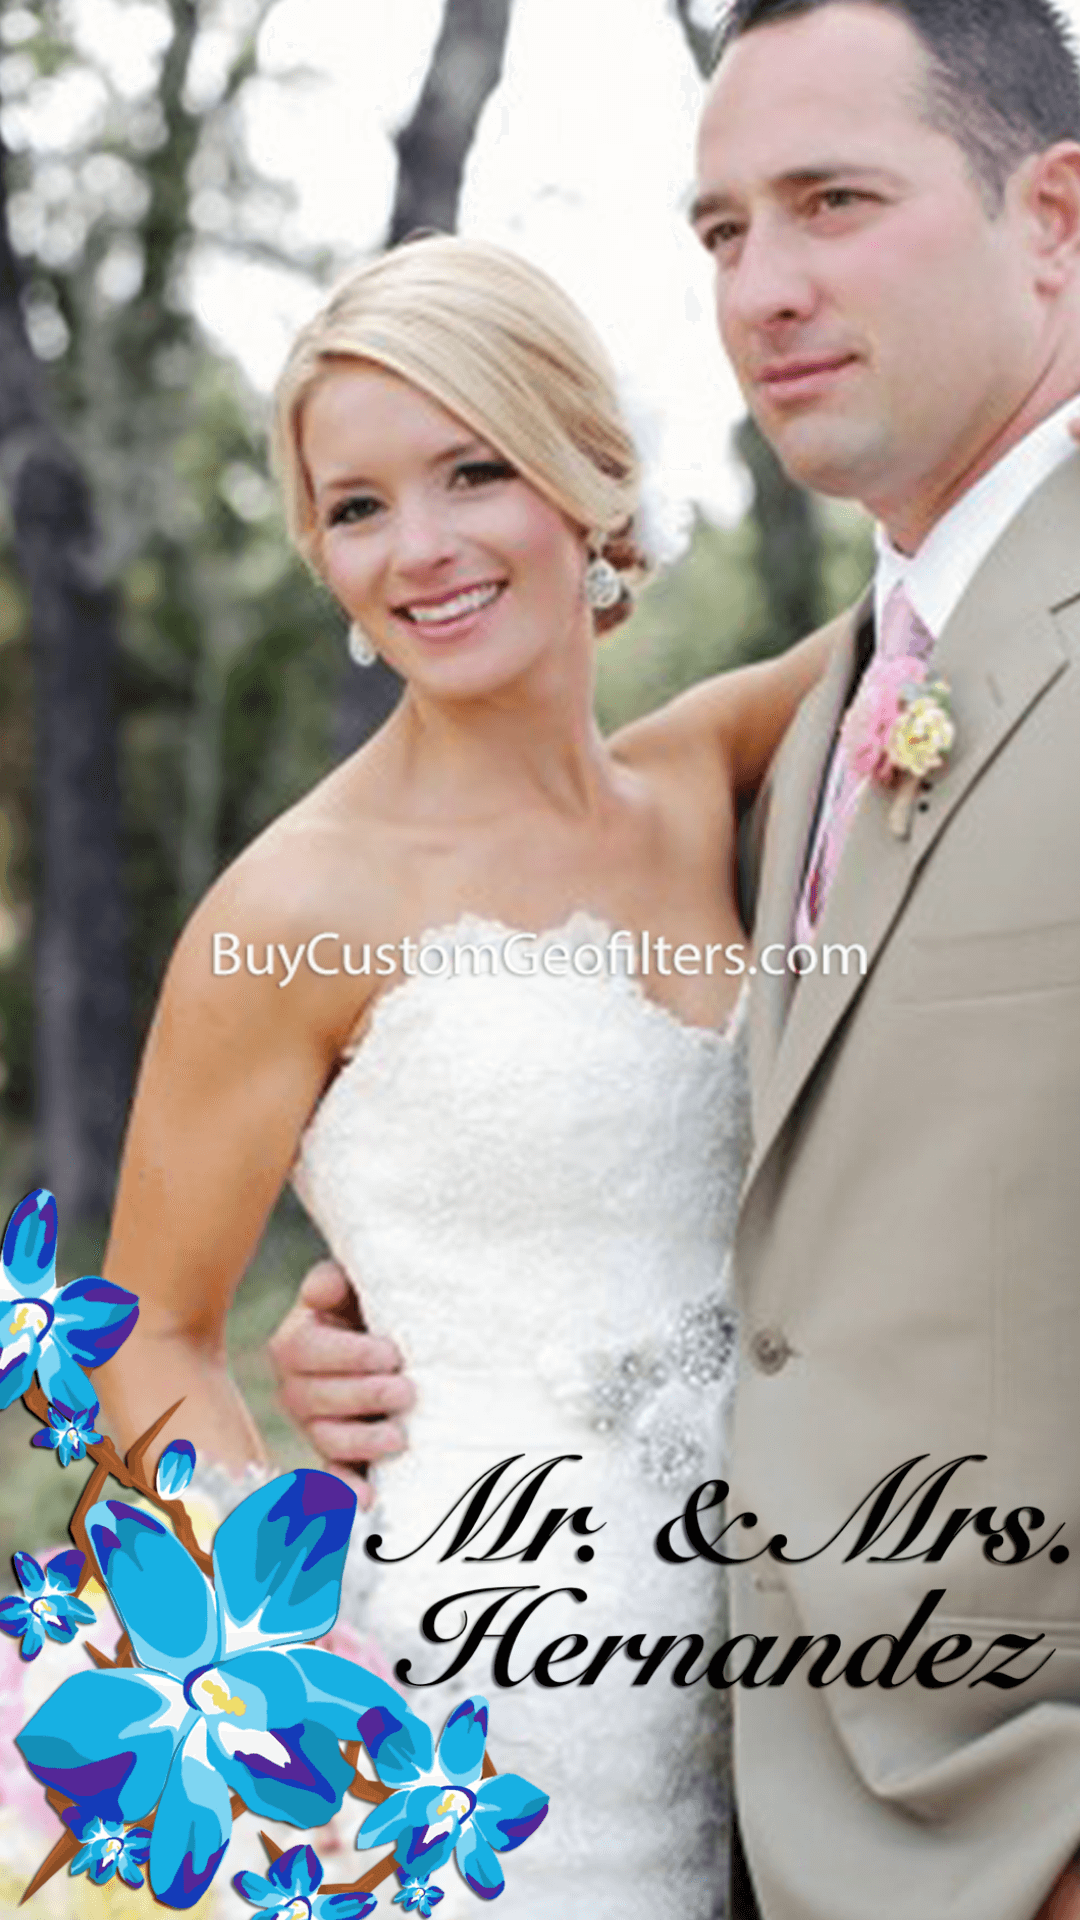 snapchat-wedding-geofilters-for-mr-and-mrs-hernandez-wedding.png